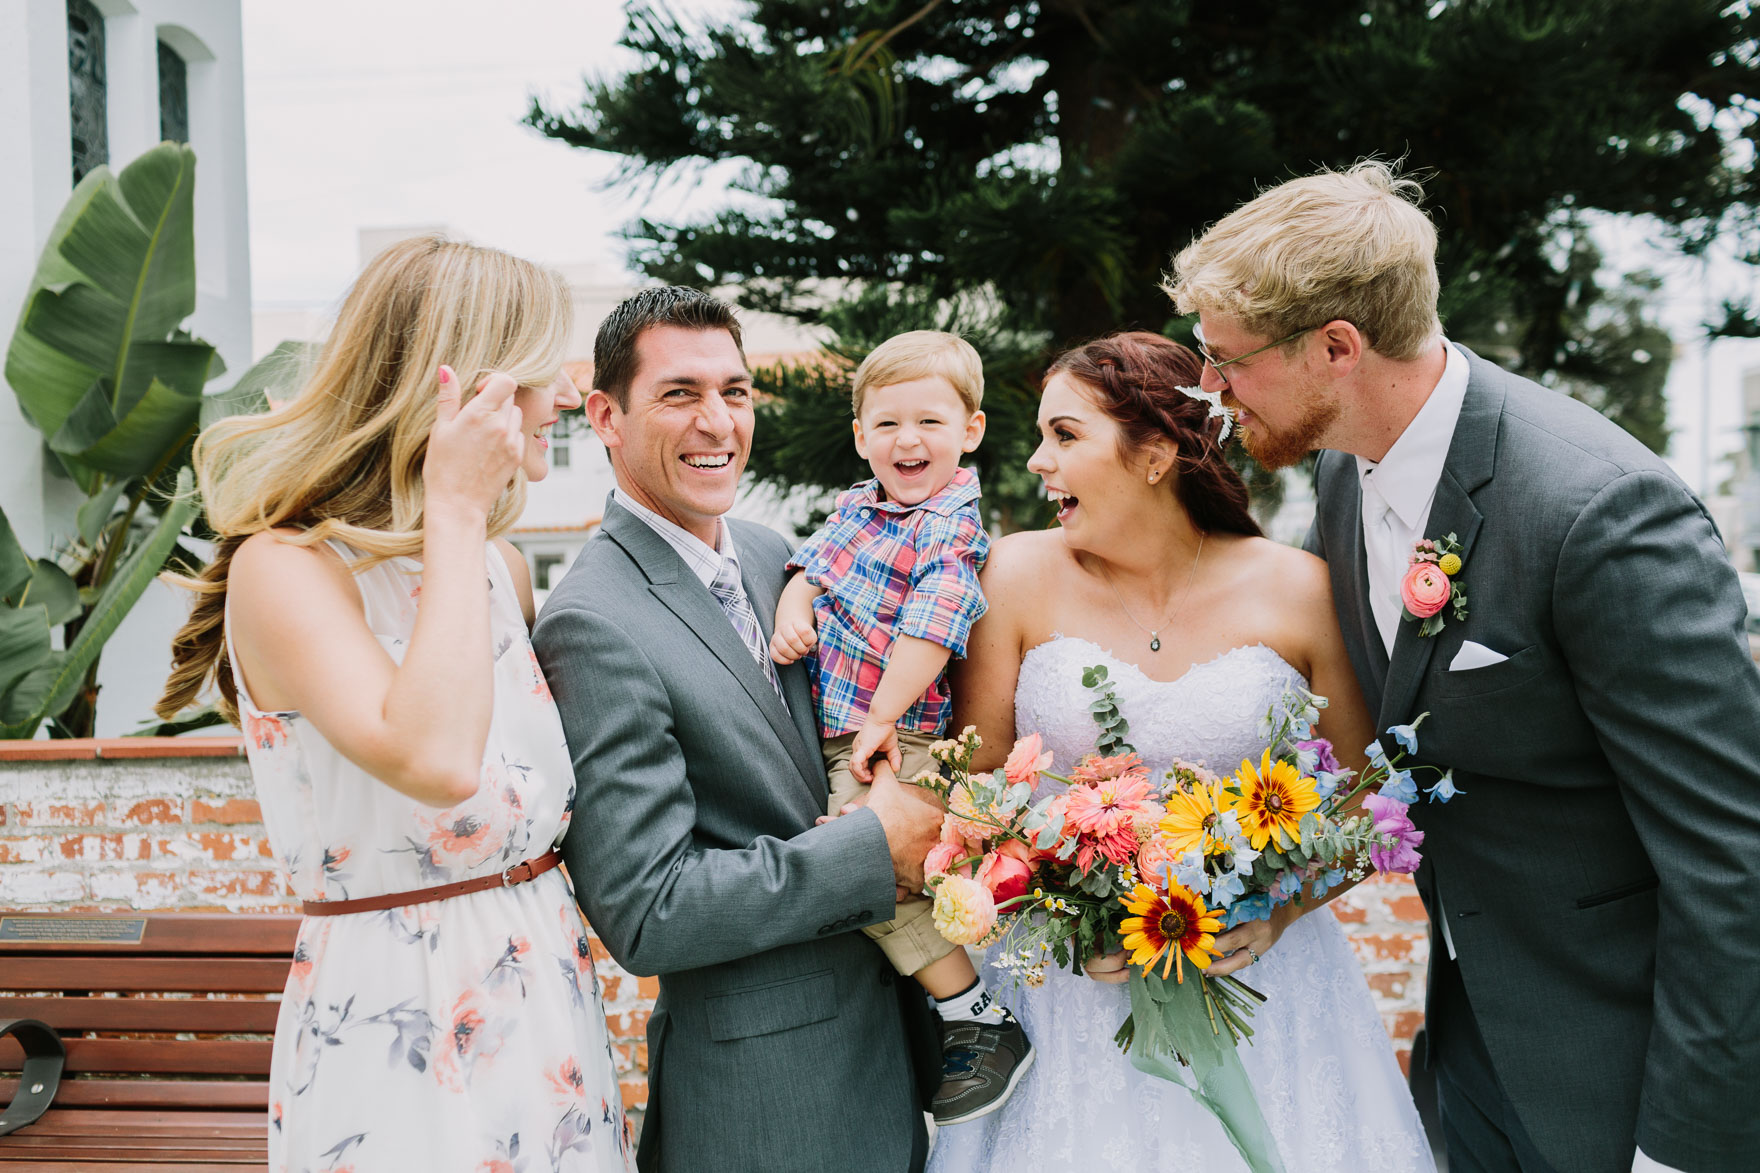 Fun and Ice-Cream-Filled Wedding – Photo by Let's Frolic Together